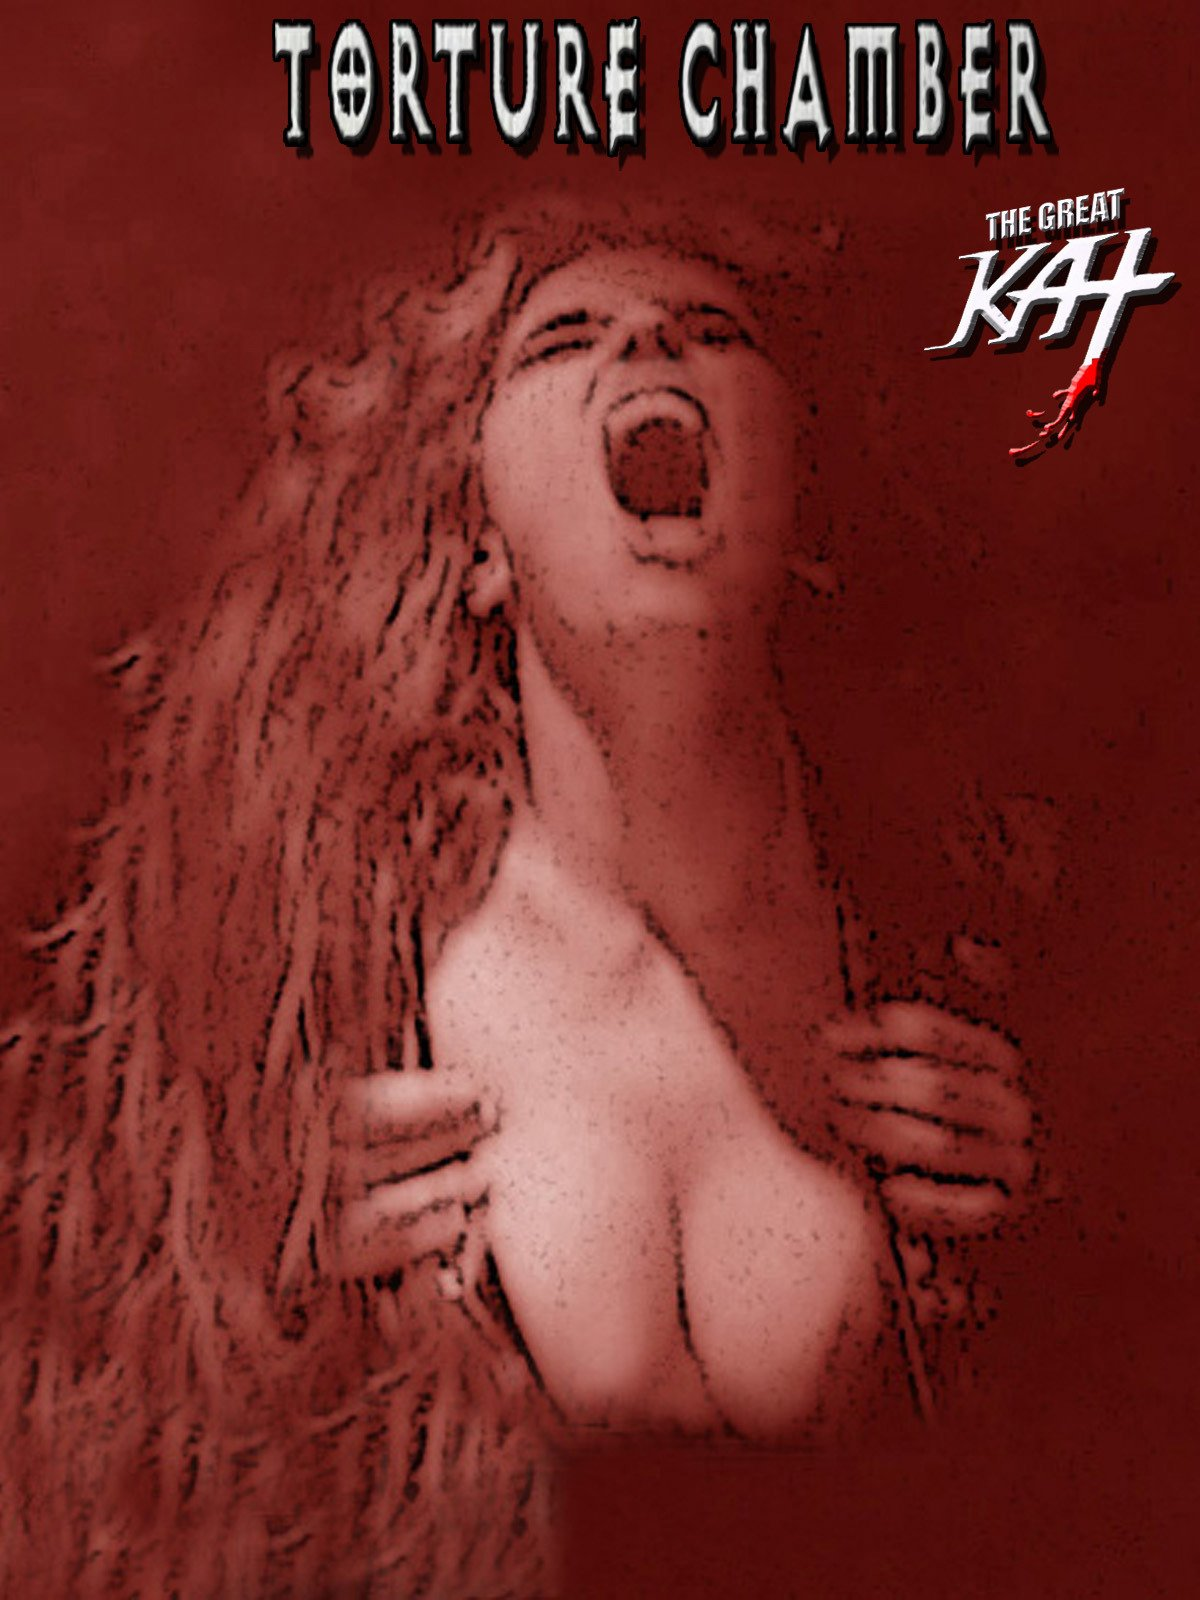 The Great Kat - Torture Chamber